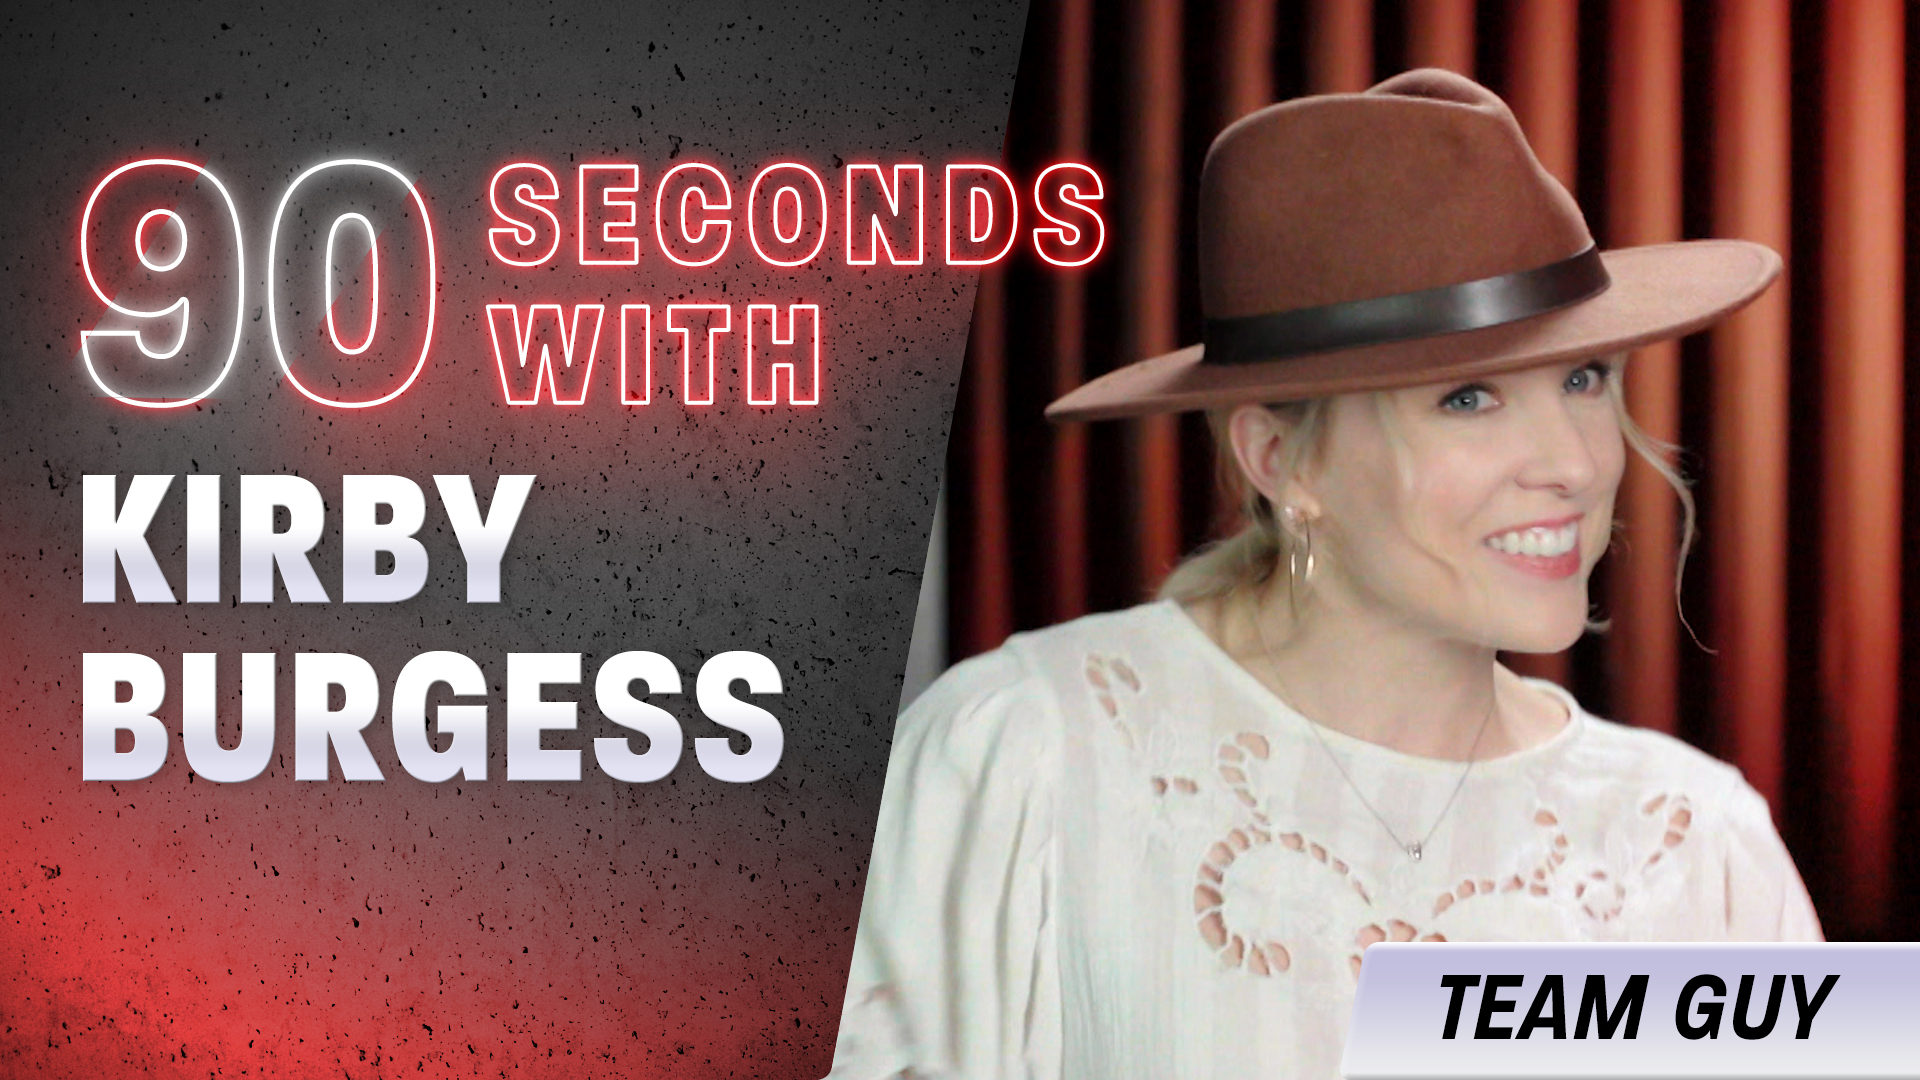 90 Seconds with Kirby Burgess